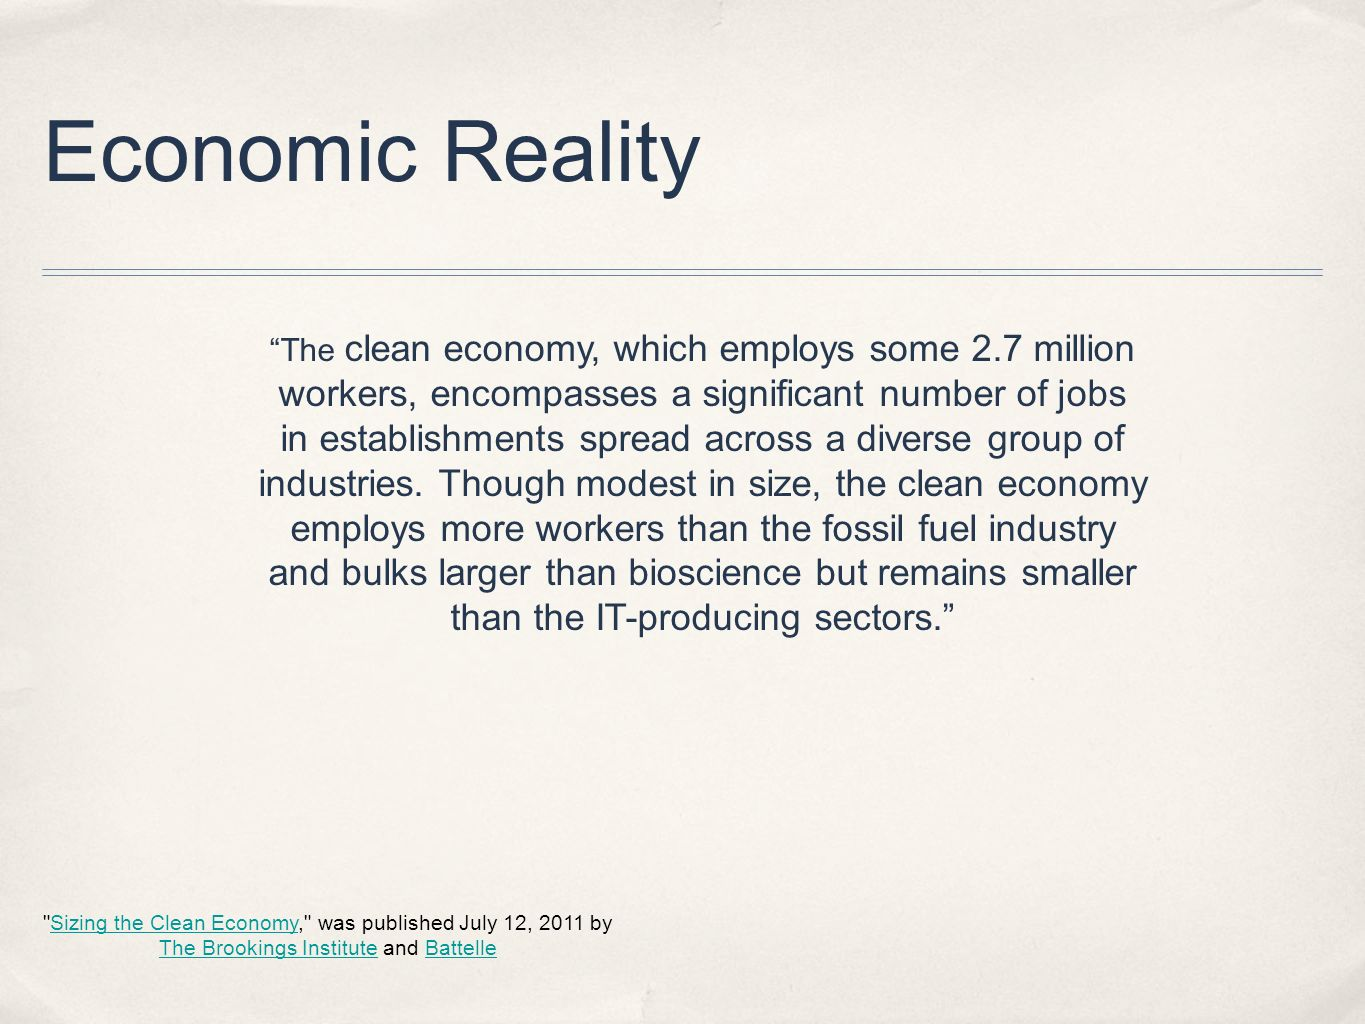 Economic Reality The clean economy, which employs some 2.7 million workers, encompasses a significant number of jobs in establishments spread across a diverse group of industries.